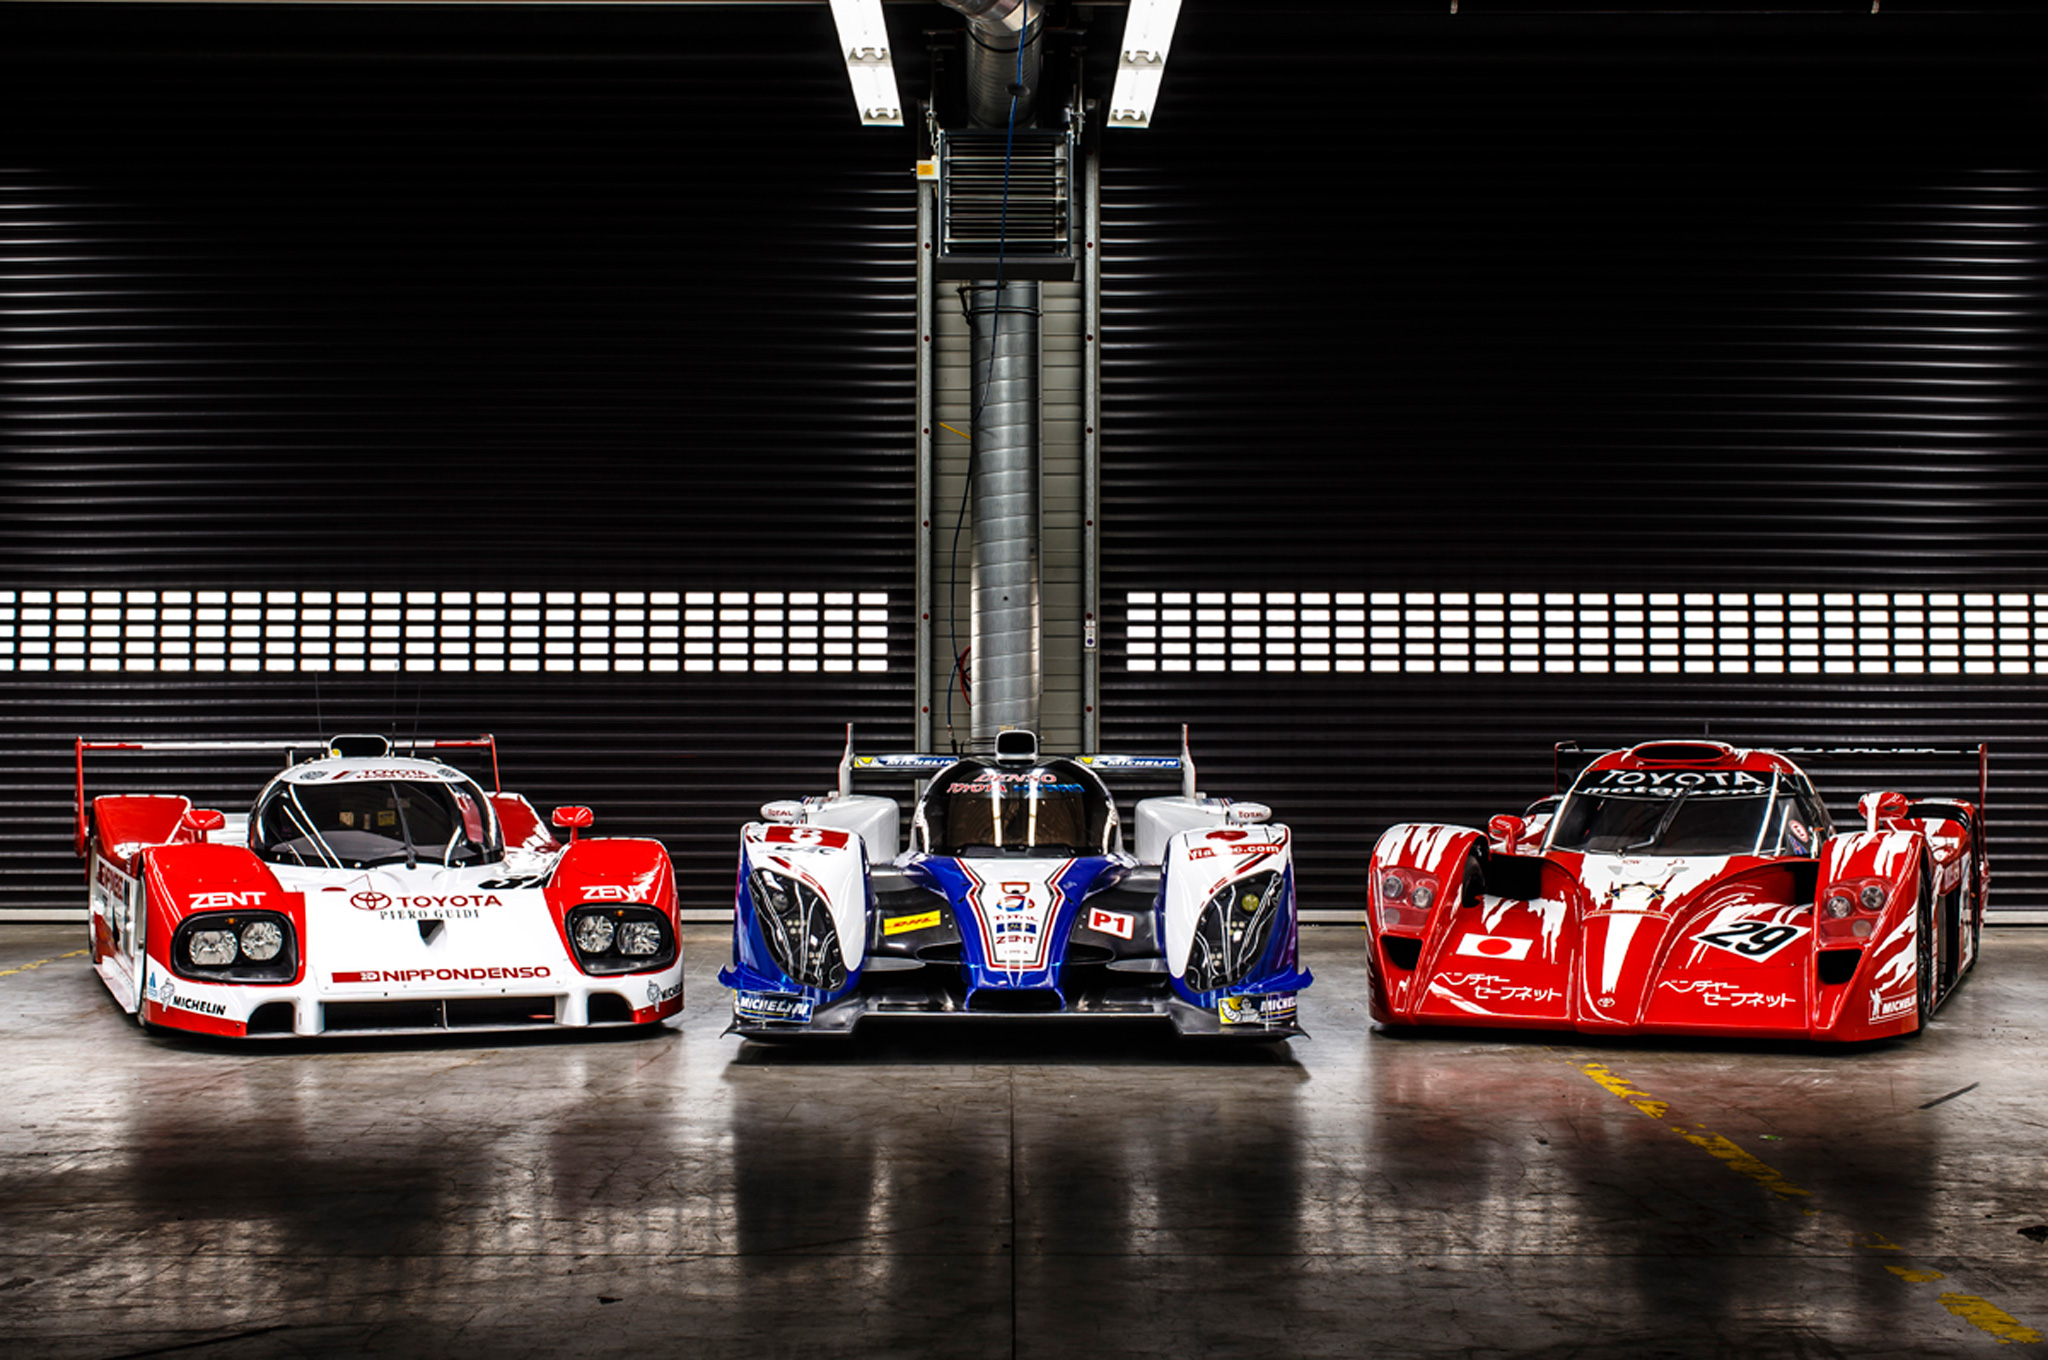 Toyota to Celebrate Le Mans Legacy at 2014 Goodwood Festival of Speed